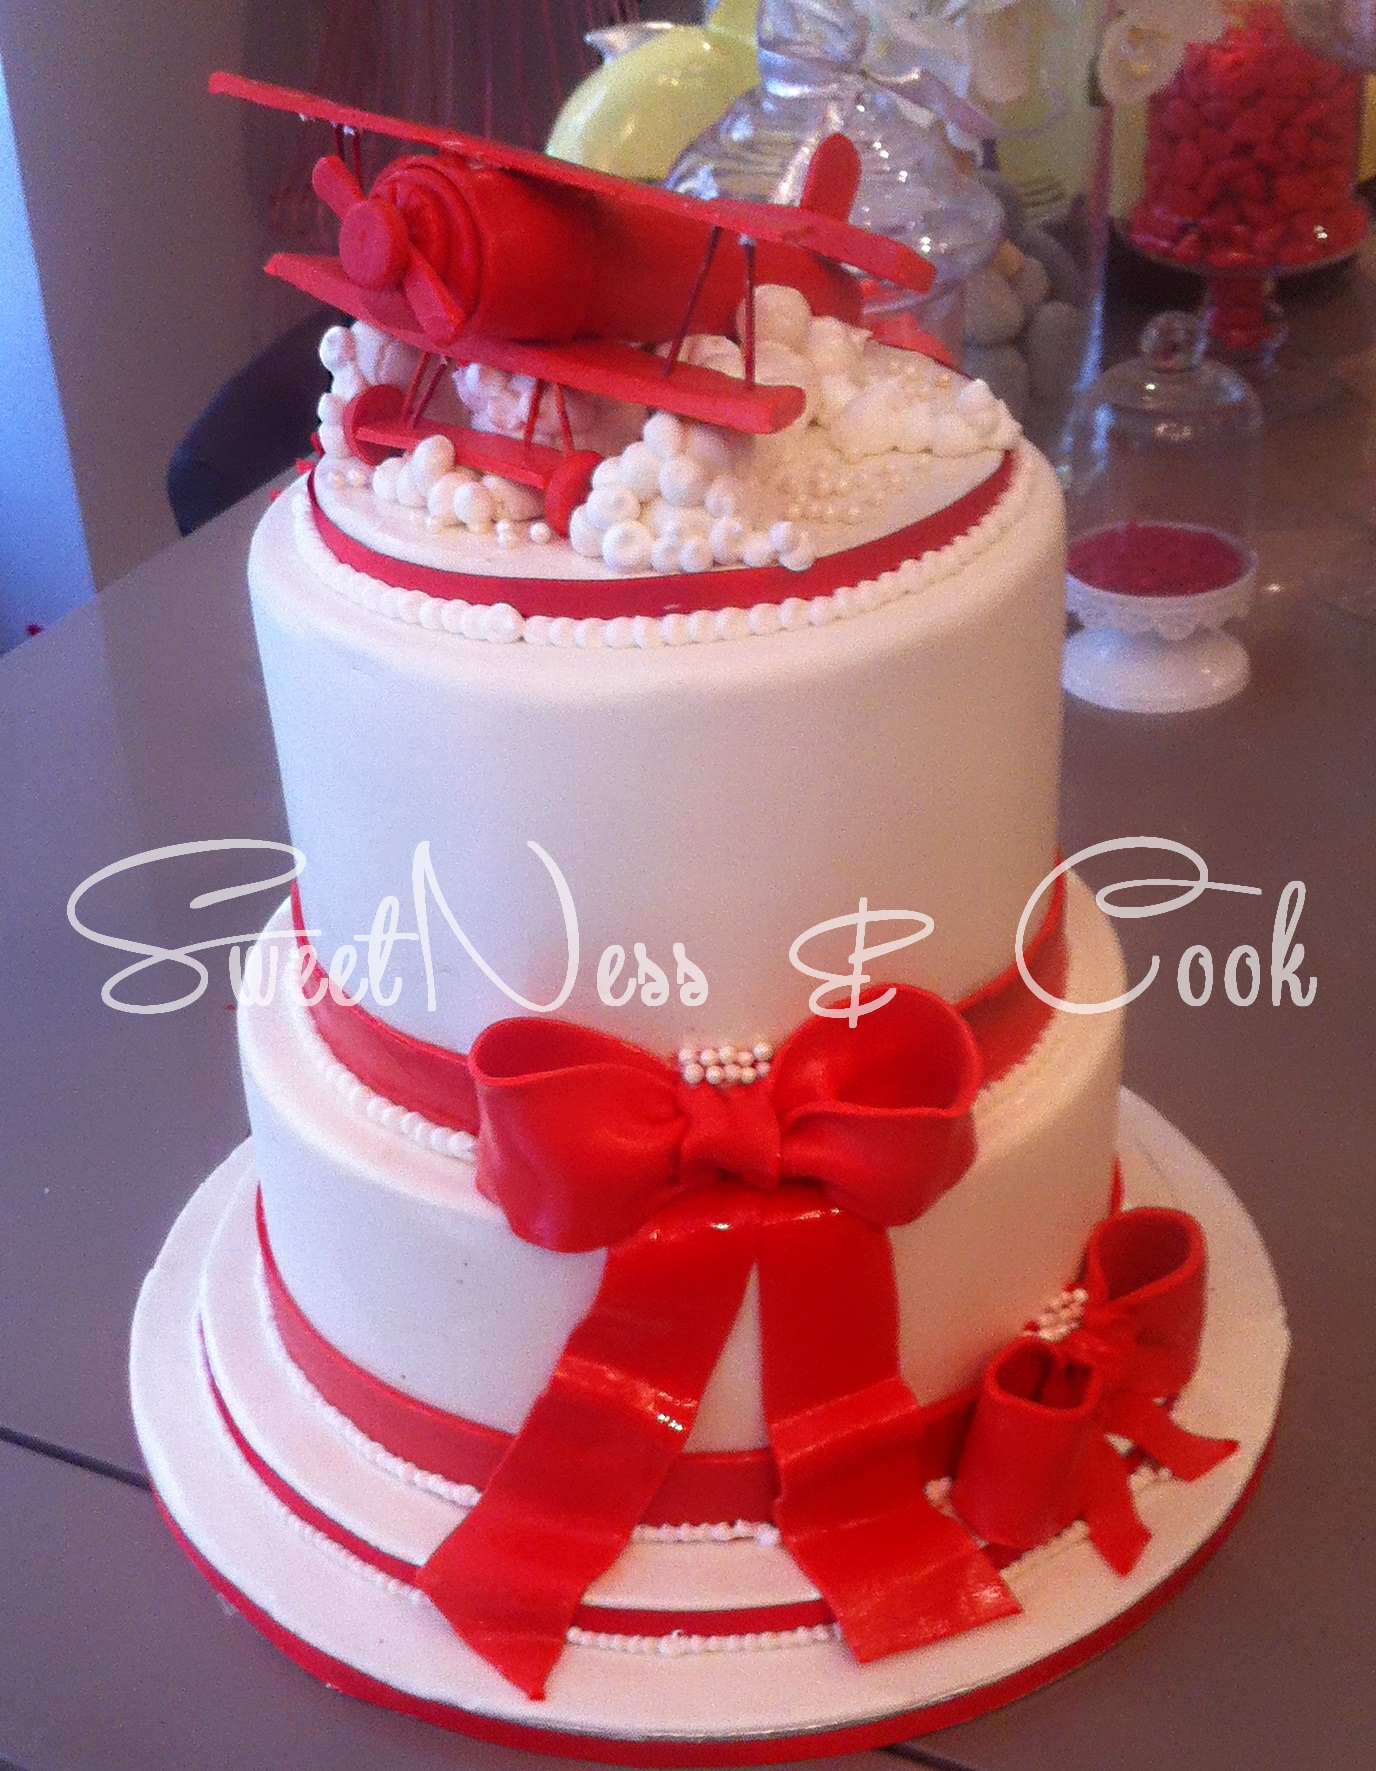 Wedding Cake Avion Biplan